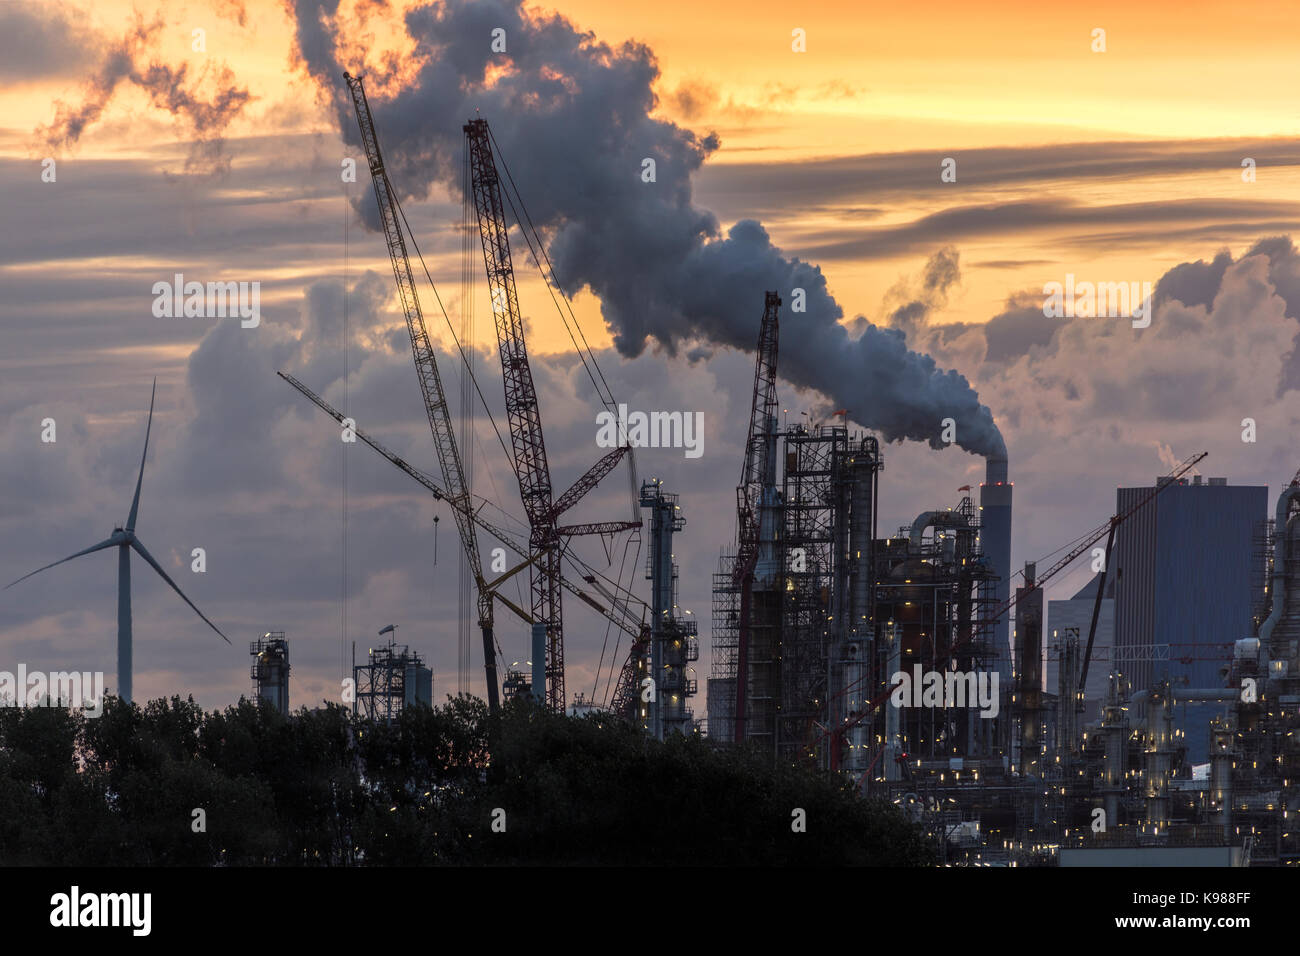 Dusk over an industrial skyline - Rotterdam - Netherlands - Stock Image